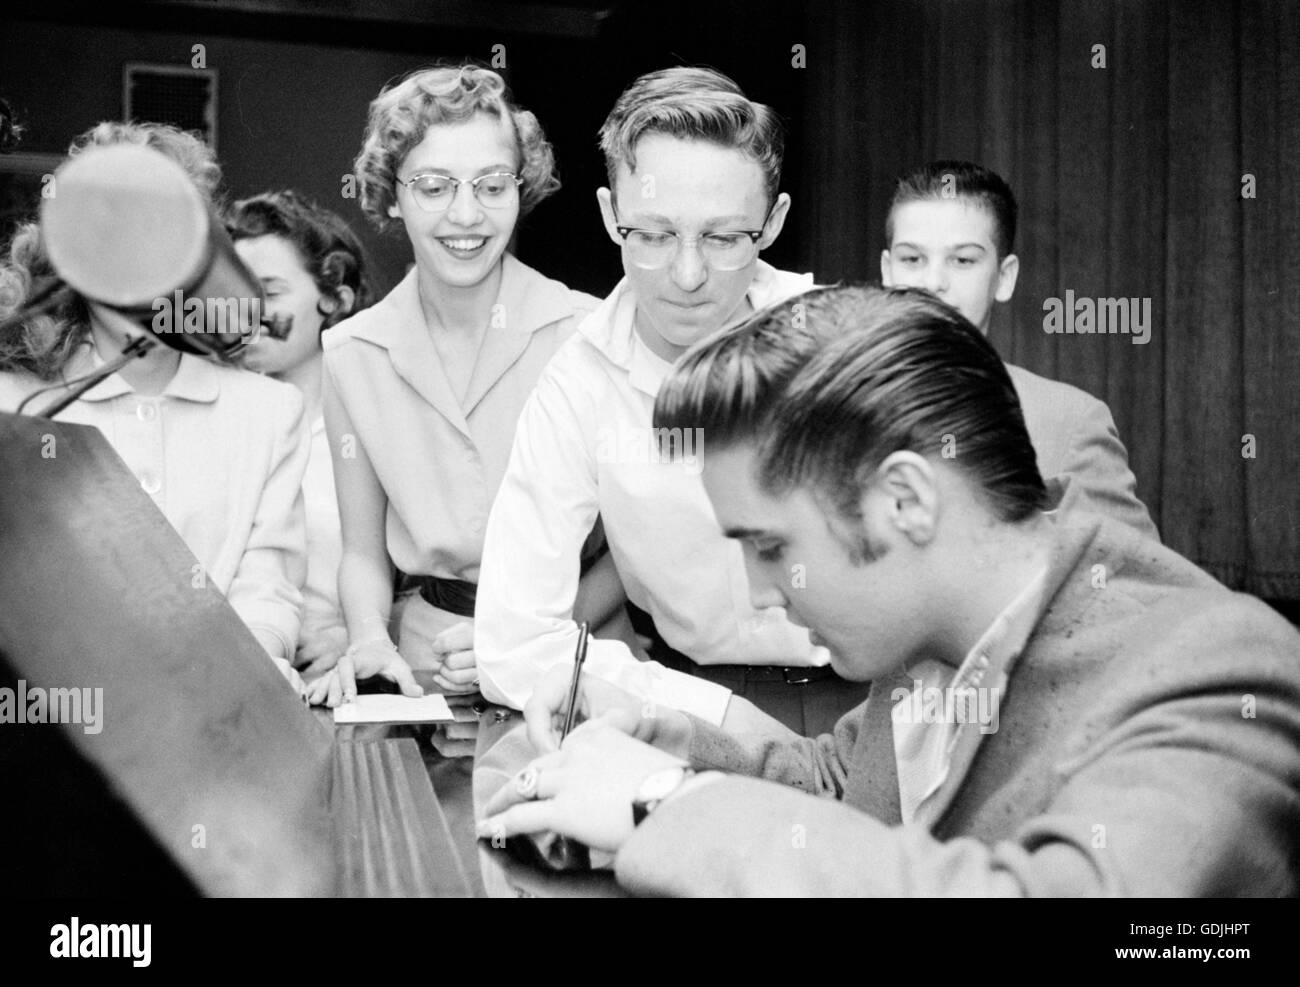 Elvis Presley meets with fans and signs autographs at the Fox Theater in Detroit, Michigan, May 25, 1956. - Stock Image